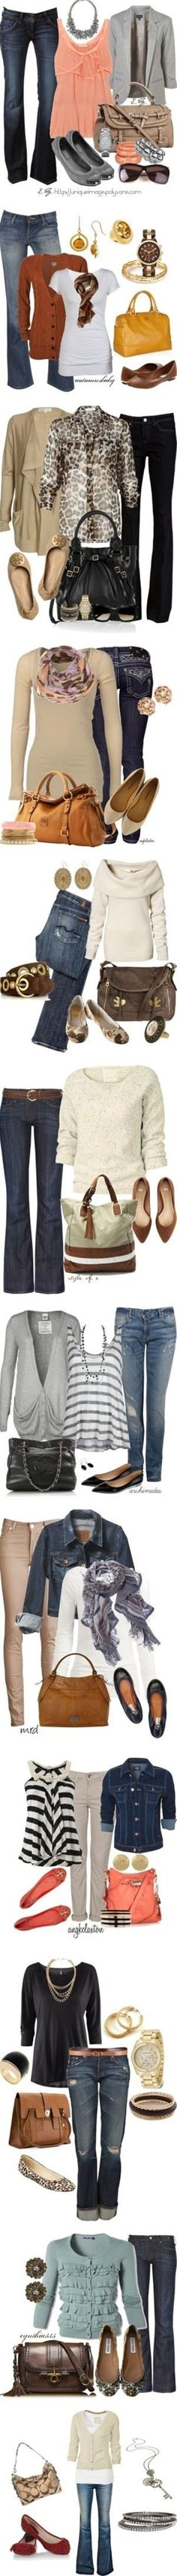 Fashion Style Combinations - i ADORE these modest fall outfits